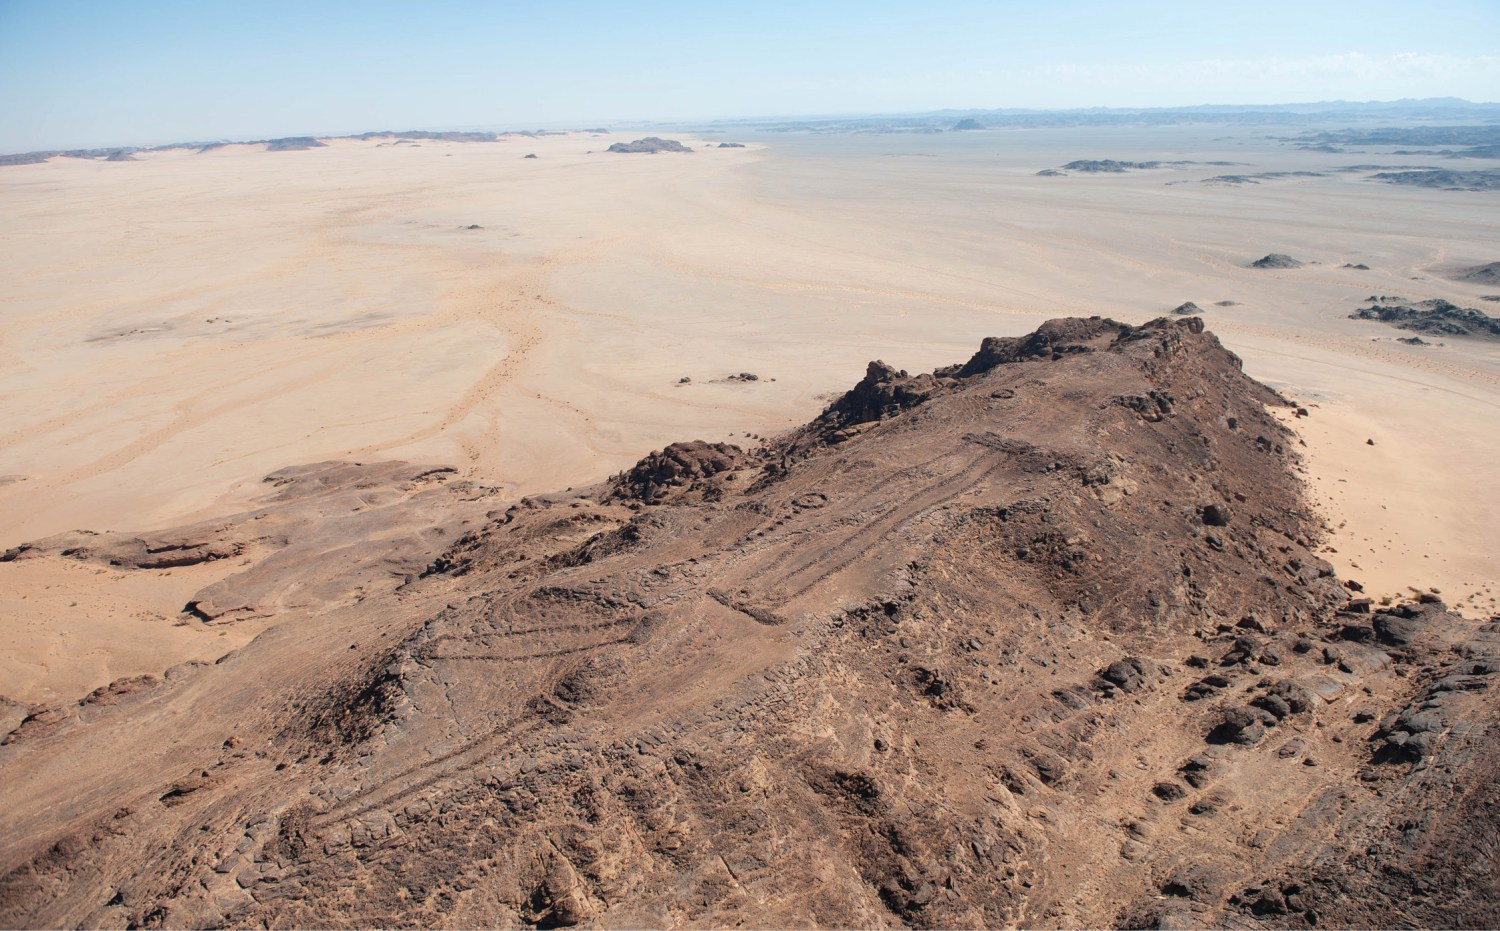 above A group of three mustatil on top of an isolated elevation in the landscape, a location commanding extensive views over the surrounding lowlands. More than 1,000 of these prehistoric monuments have been recorded in north-western Arabia.